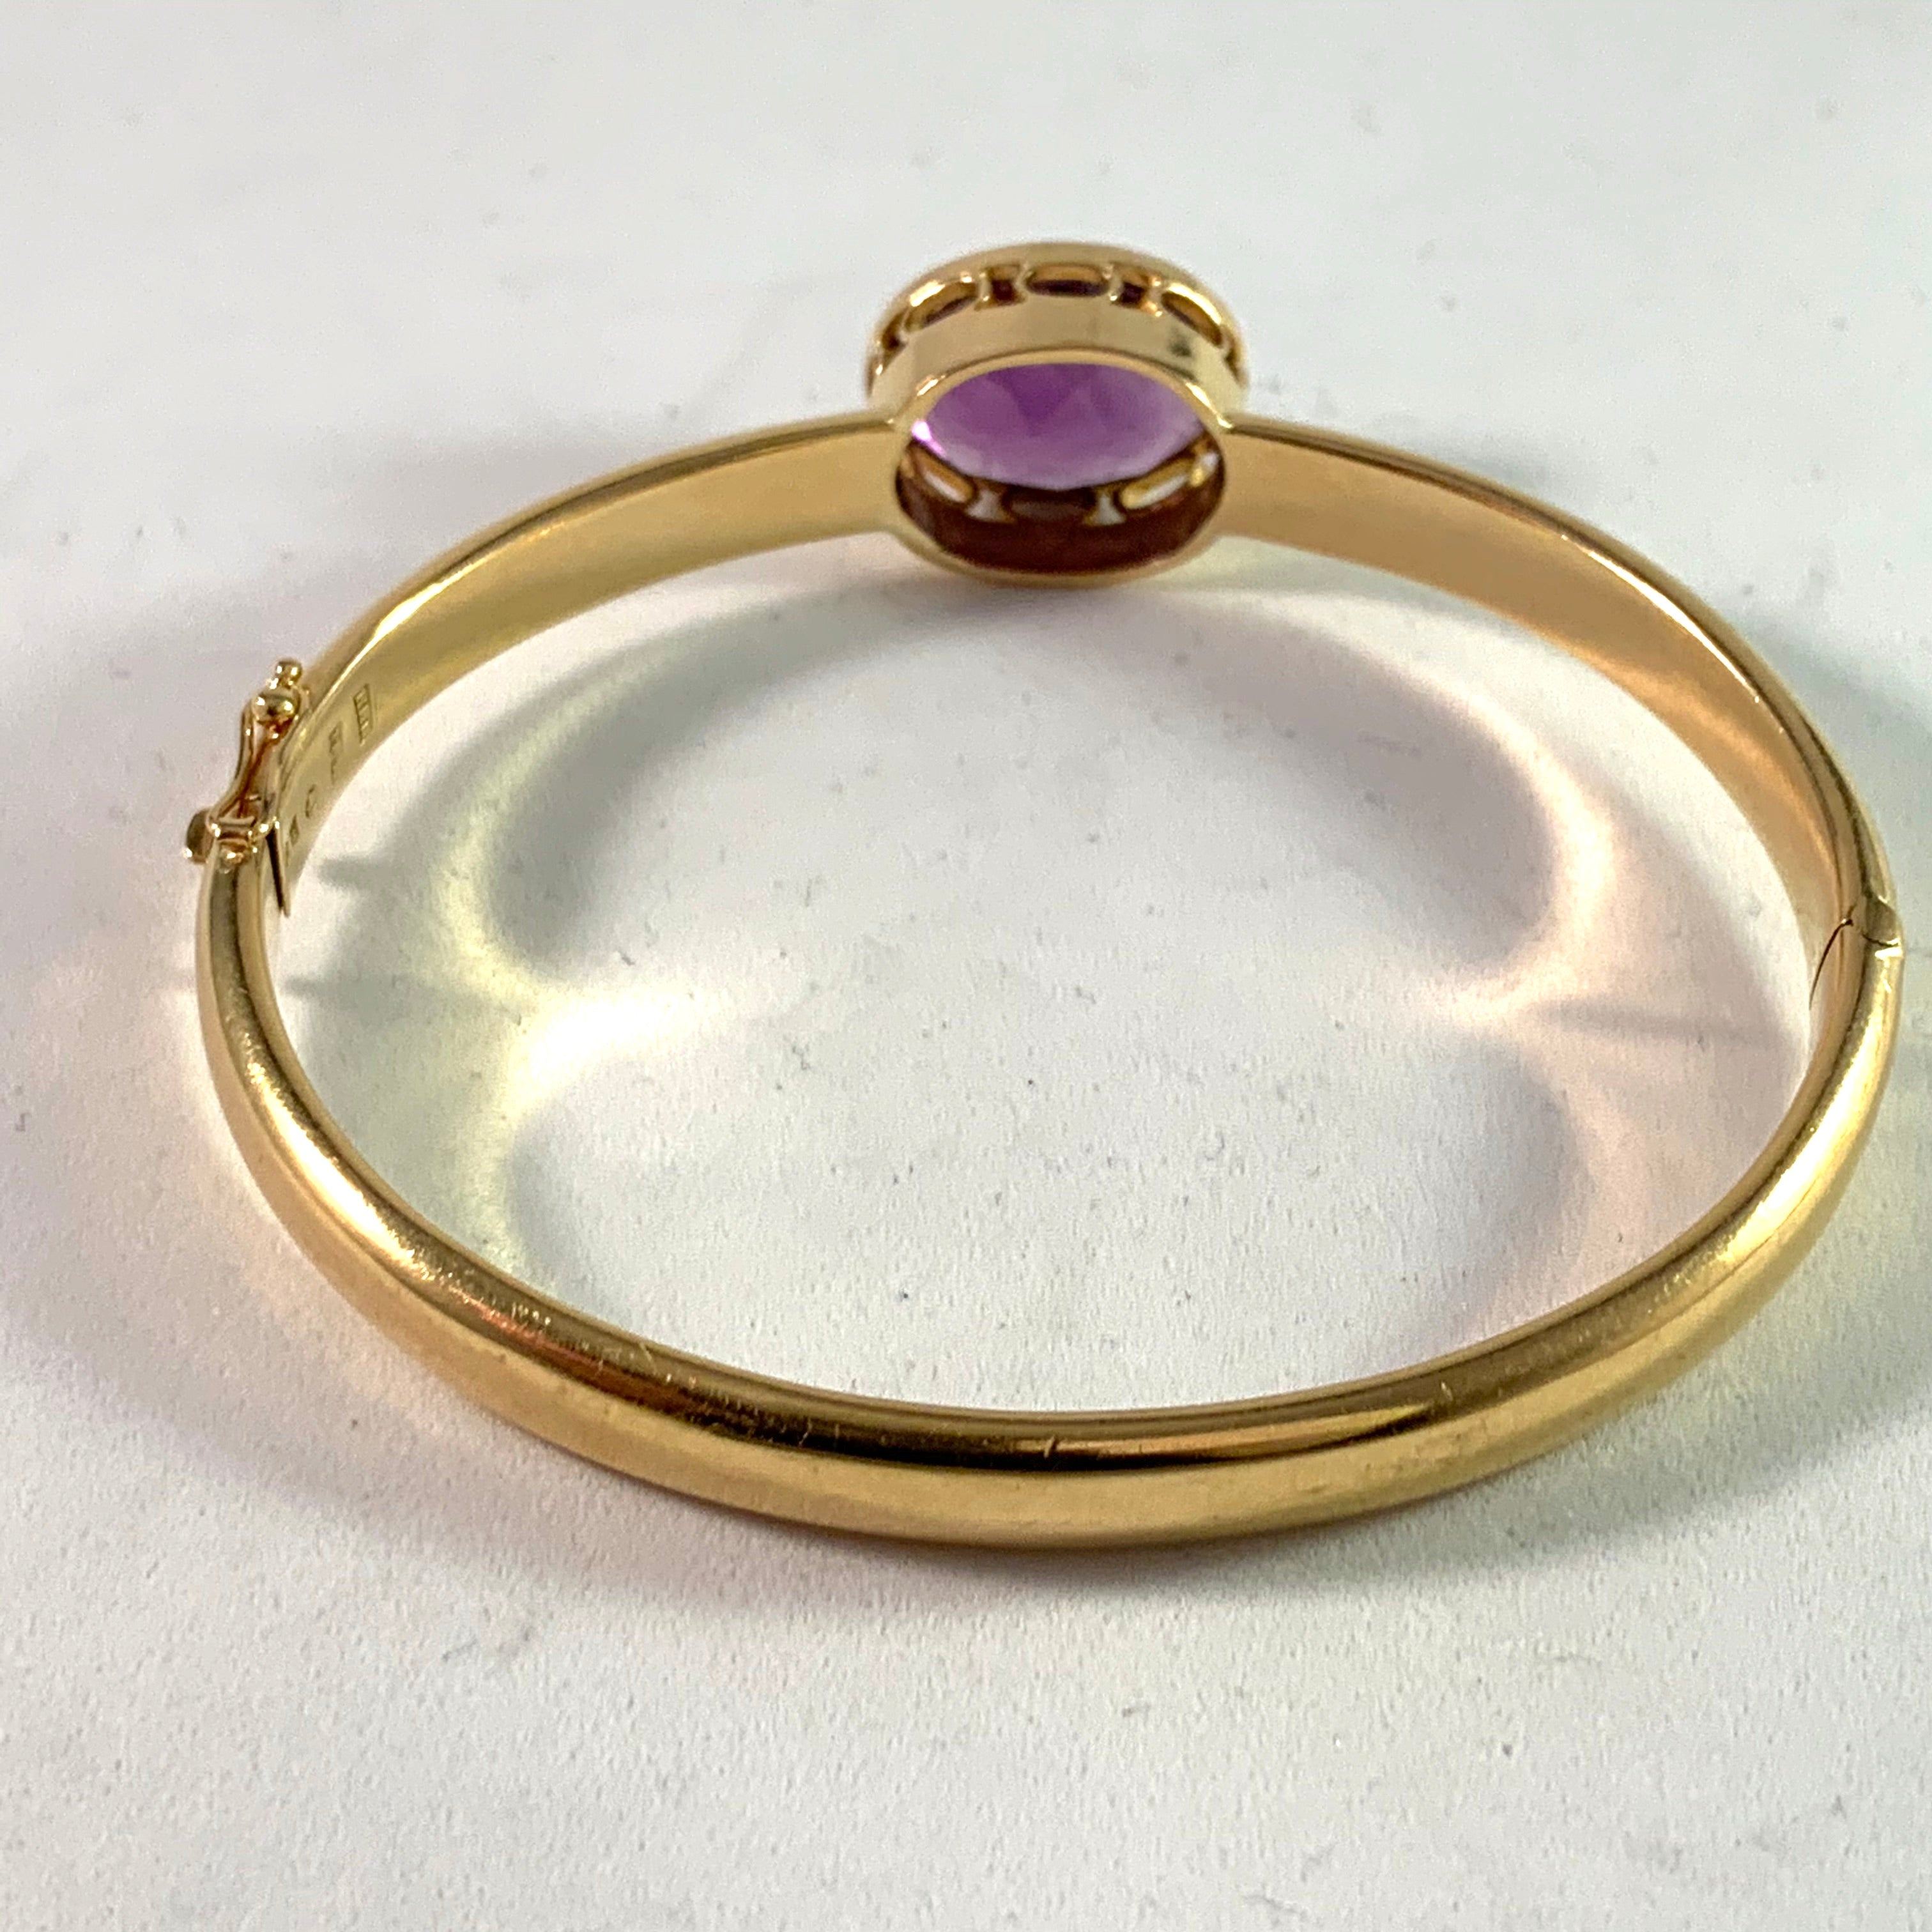 Harry Hermanson, Sweden year 1956, 18k Gold Amethyst Bangle.